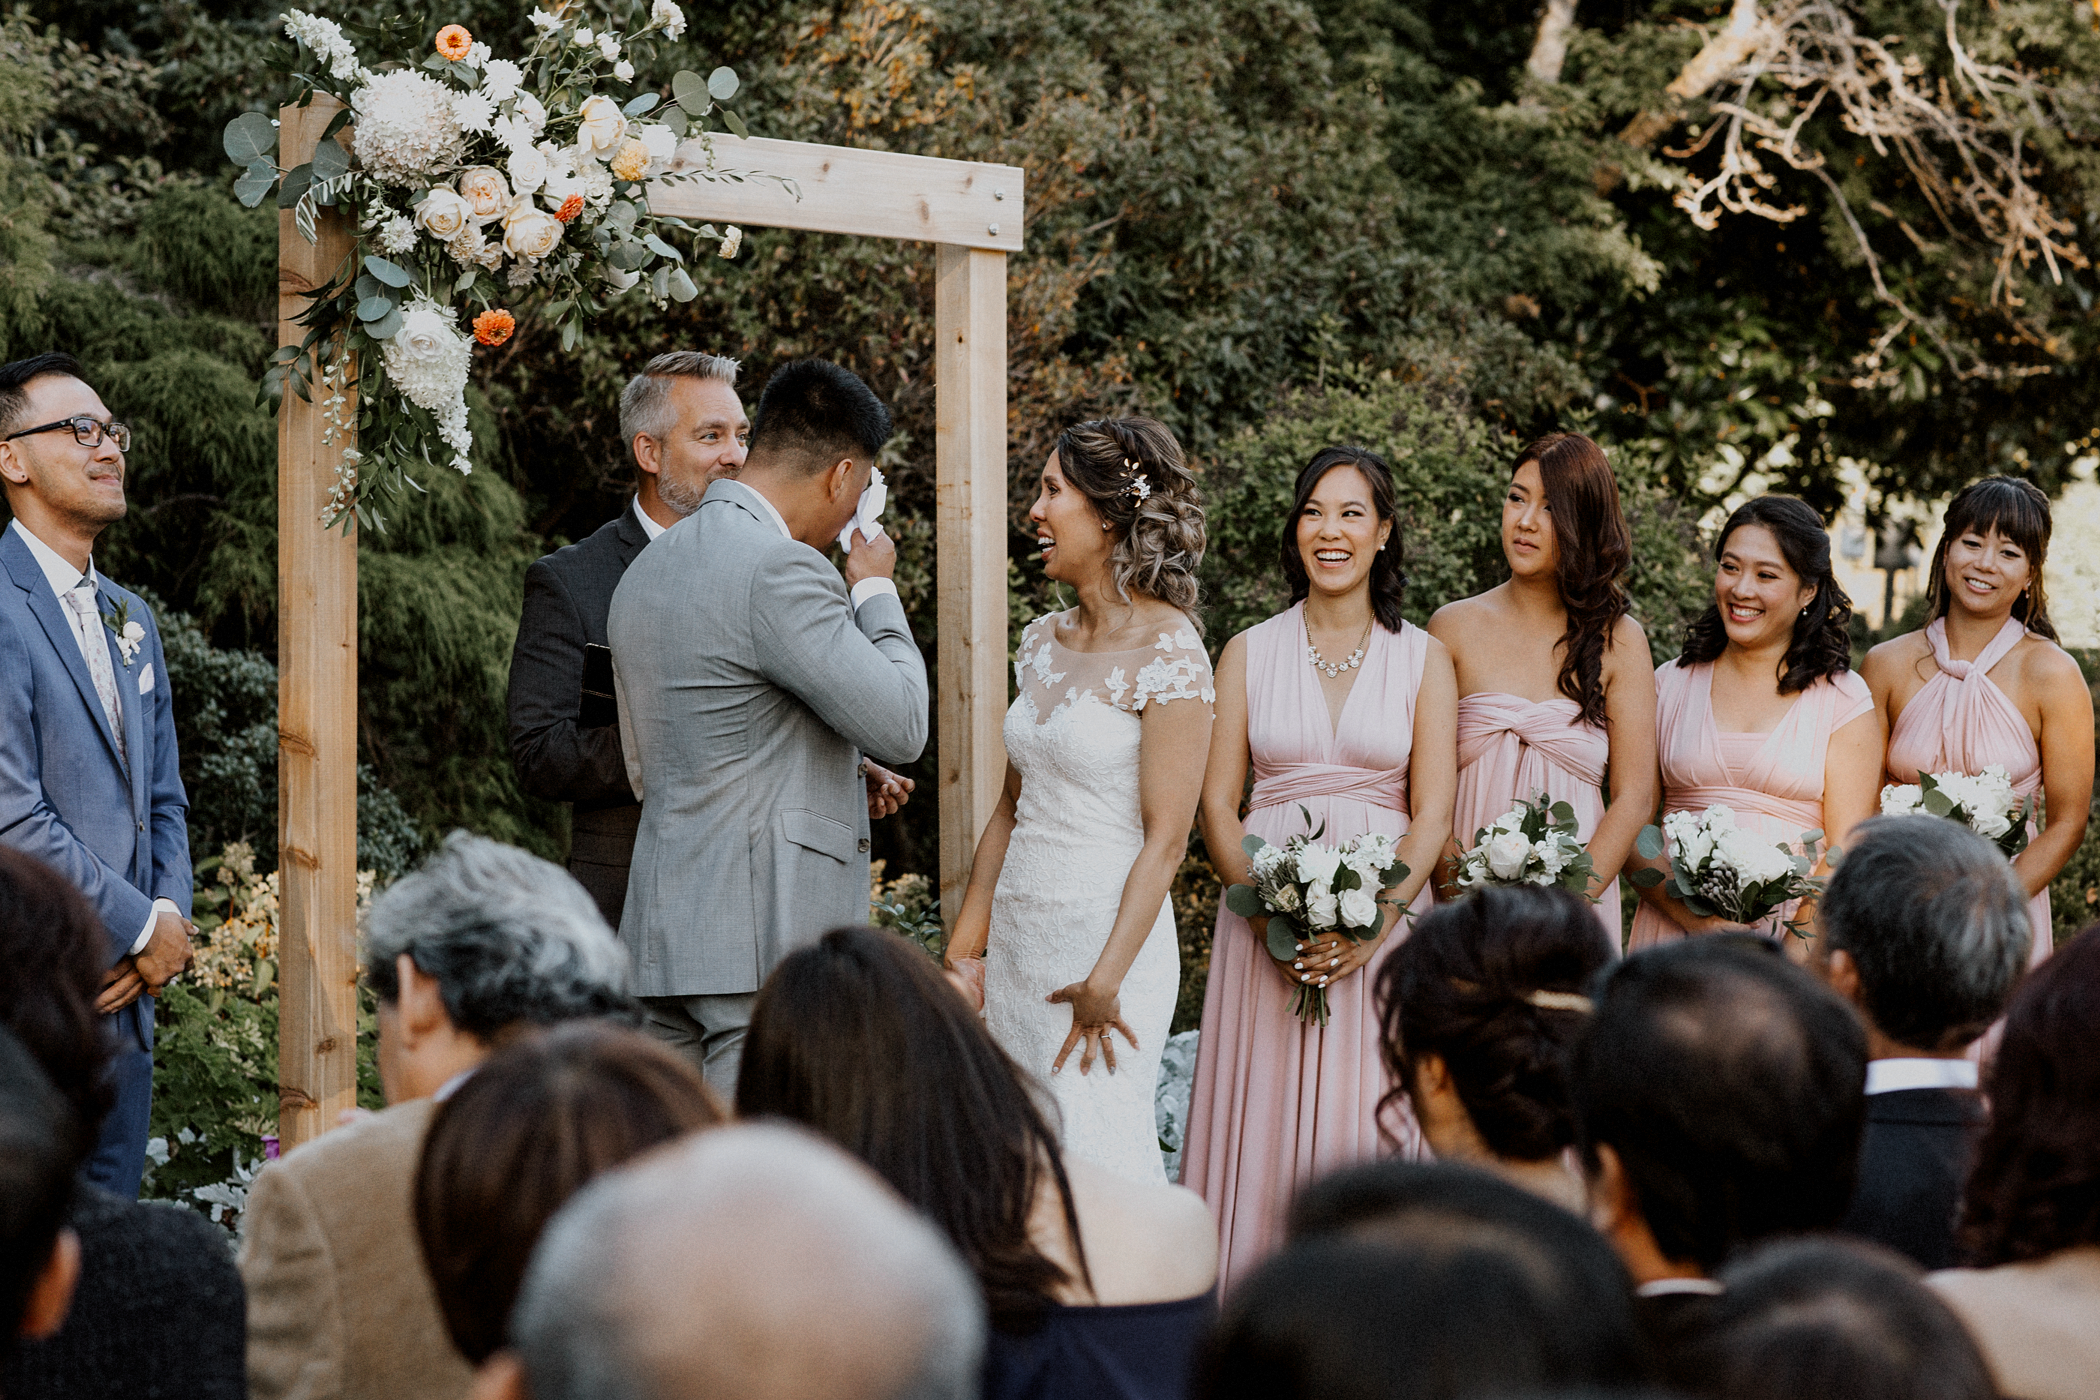 050-kaoverii-silva-vd-wedding-cecil-green-ubc-nitobe-garden-photography-blog.png